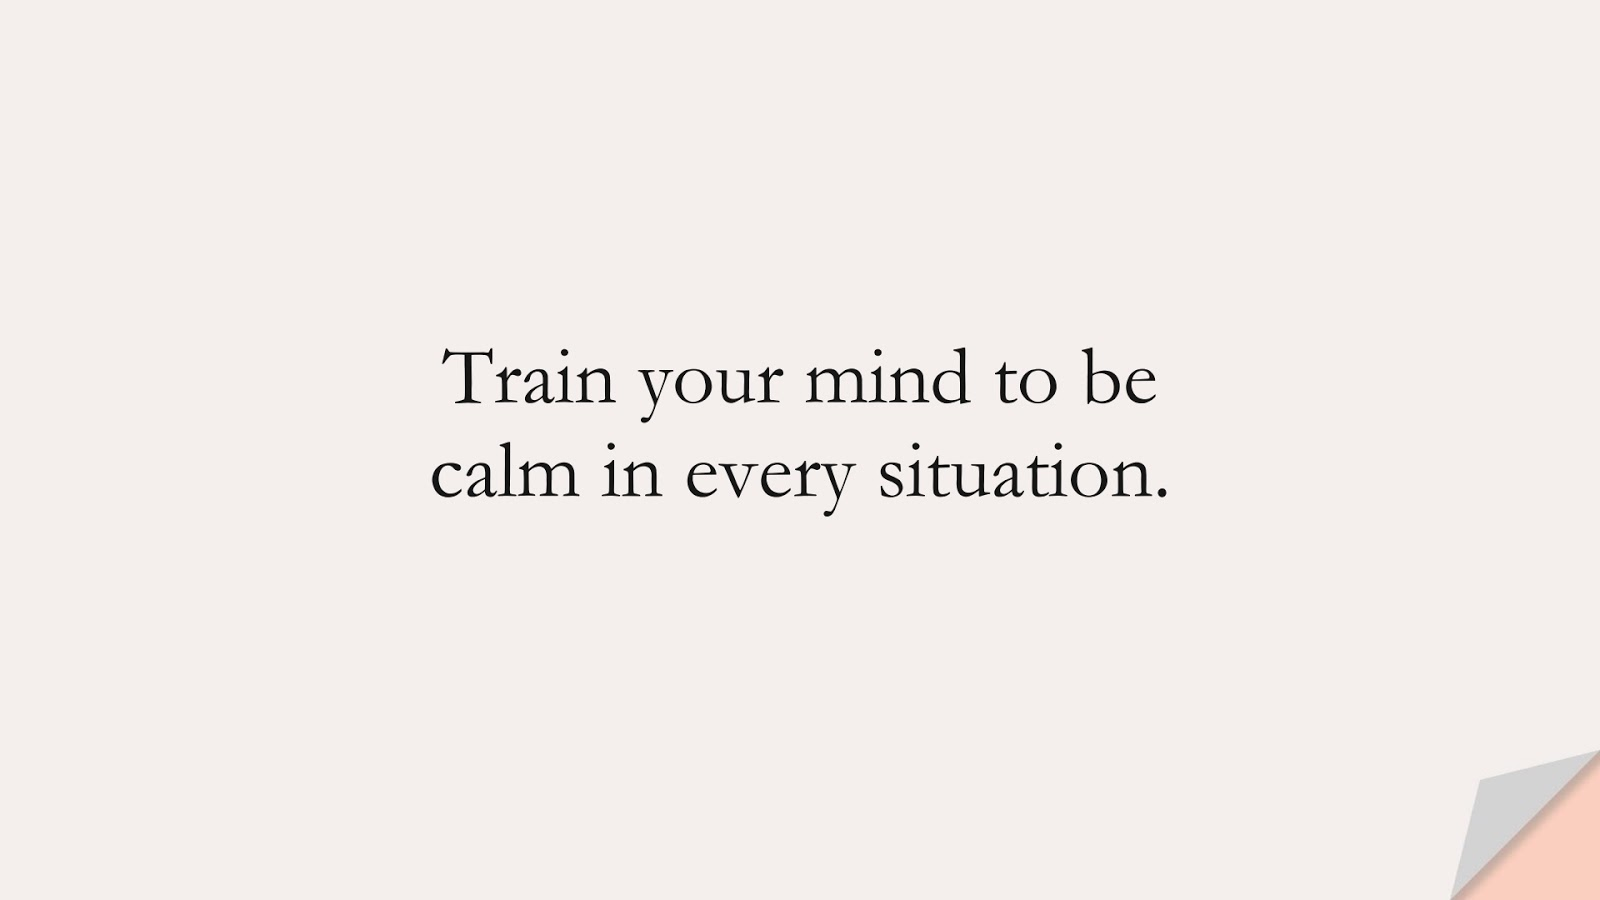 Train your mind to be calm in every situation.FALSE